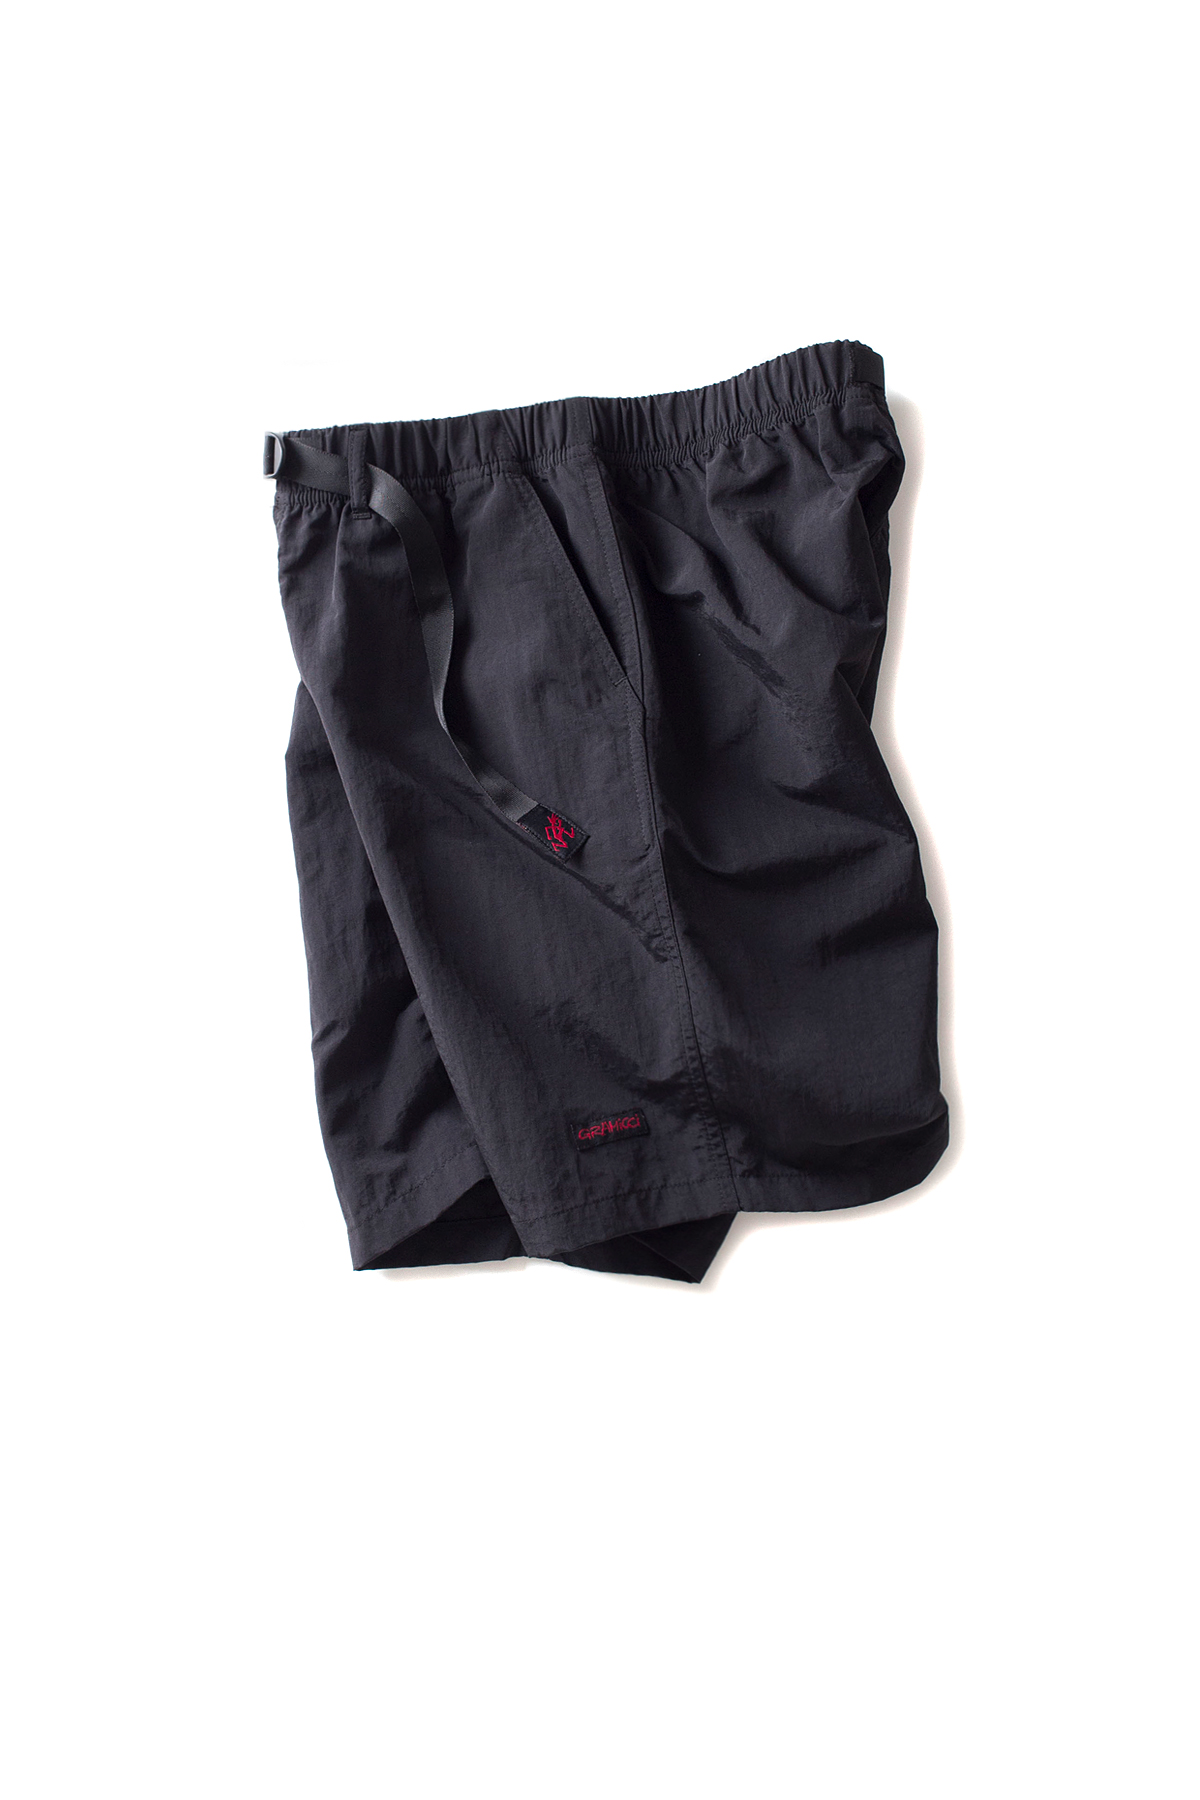 Gramicci : Packable Shorts (Black)